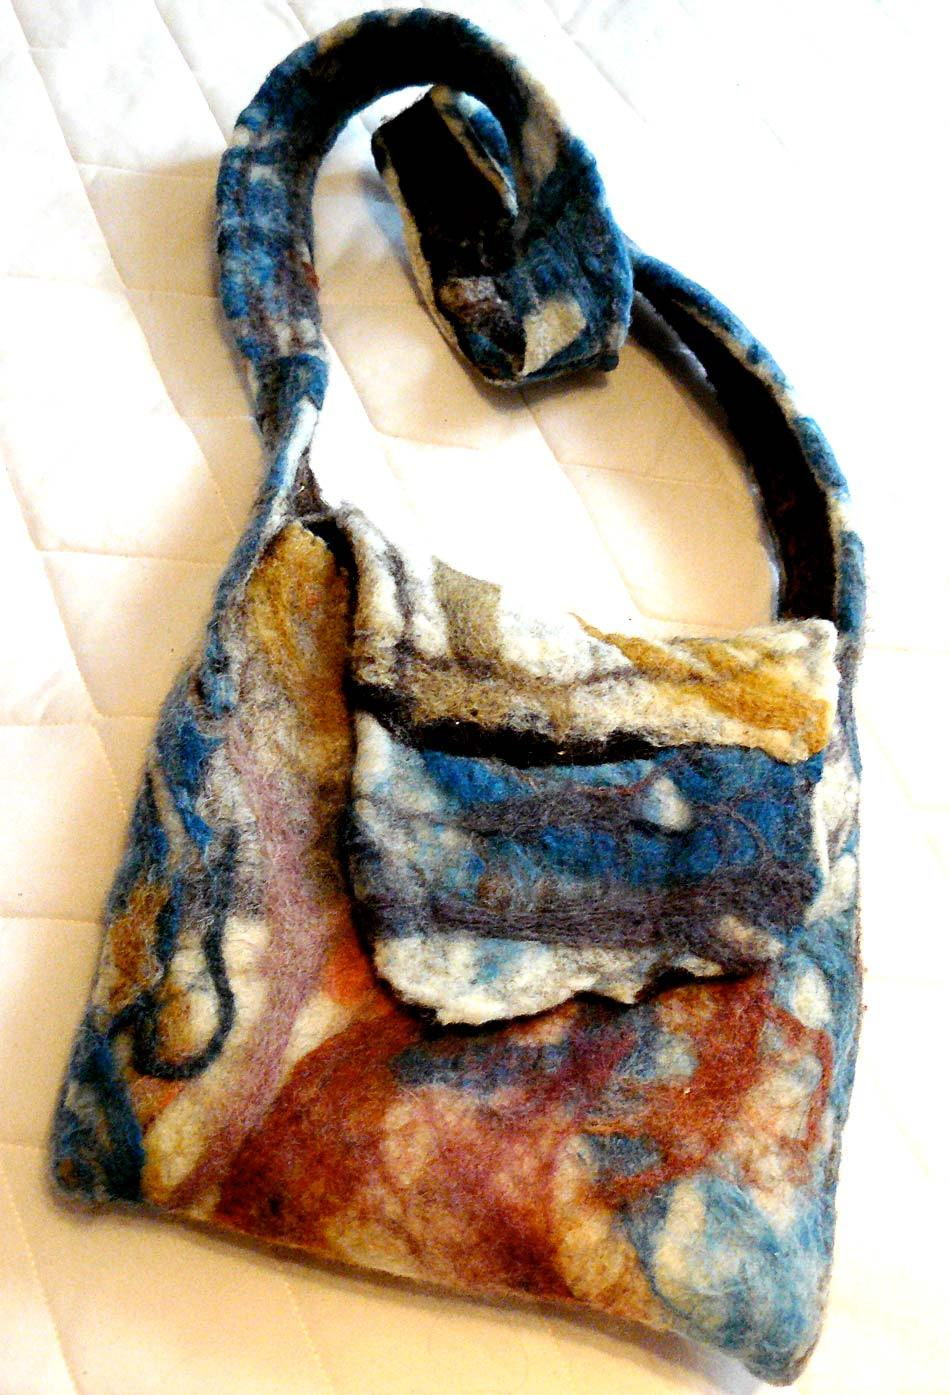 wet/needle felted bag, with needle felted pocket and cotton lining.